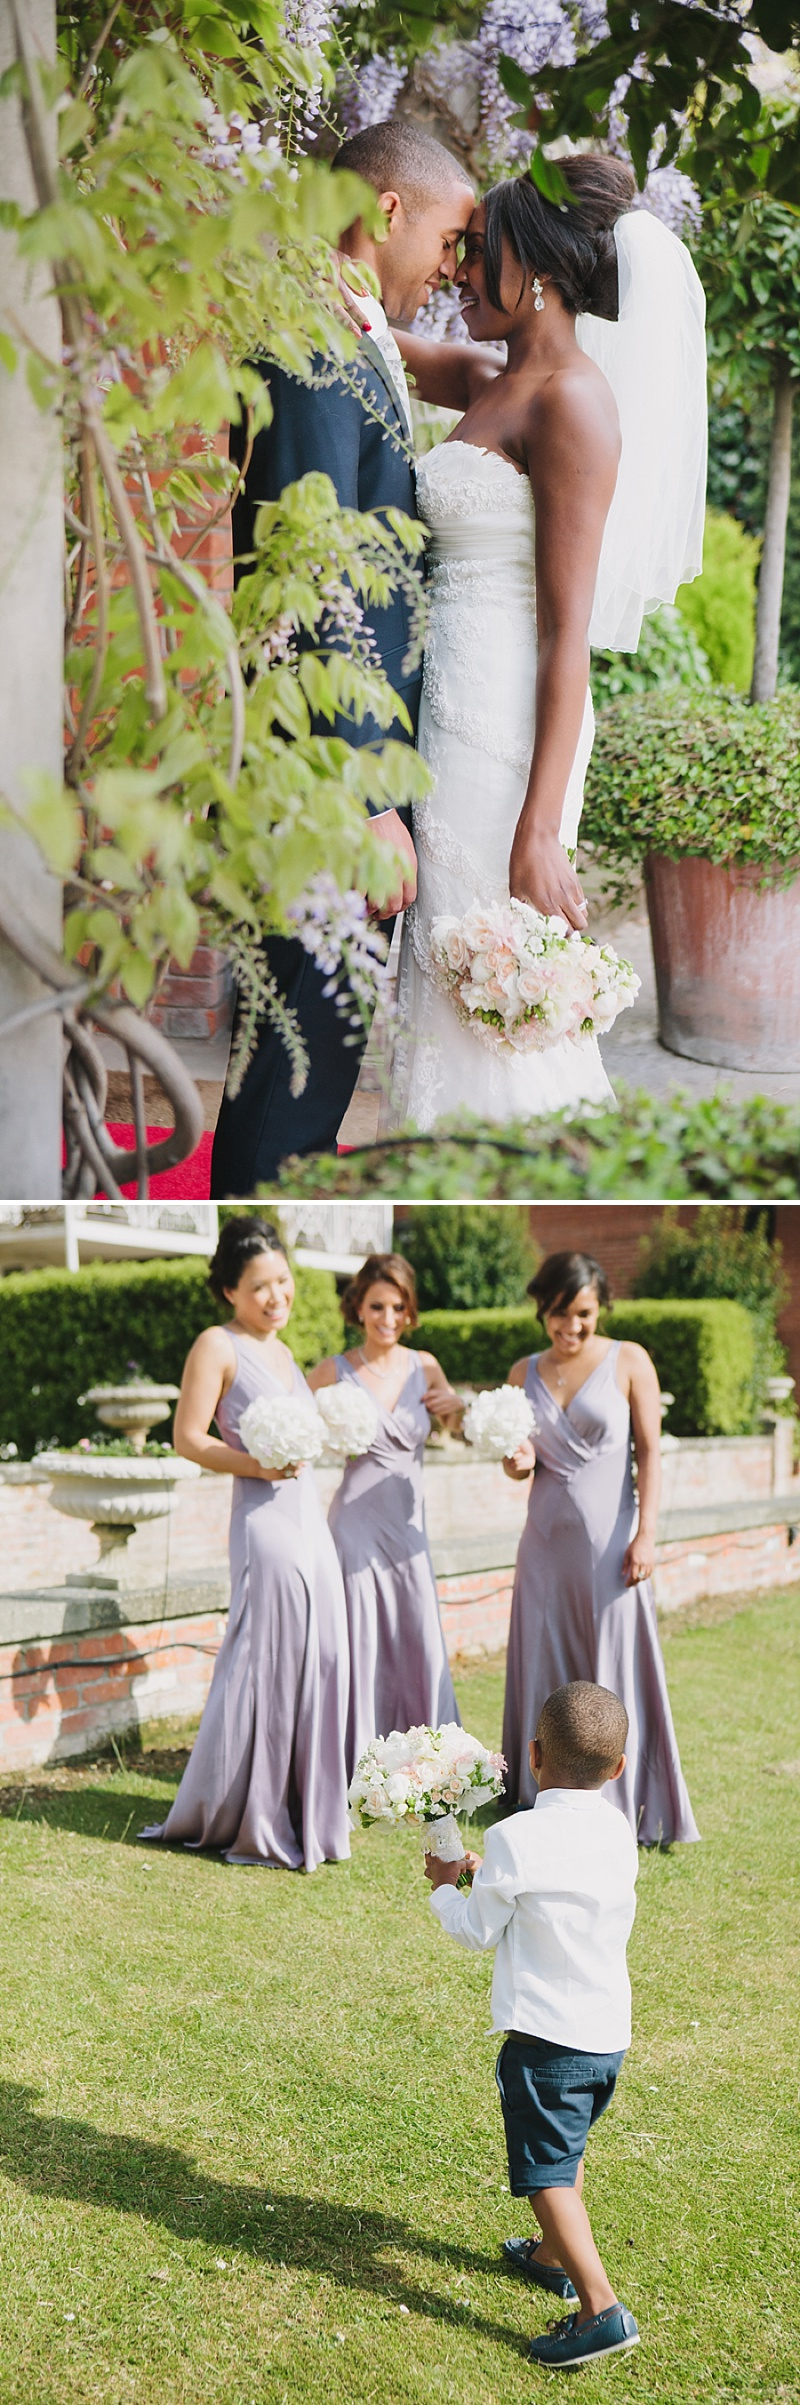 An Elegant Wedding In Dorset With Lilac Accents Bride In Dietrich By Pronovias With Vita By Jimmy Choo Sandals And Bridesmaids In Silver And Lilac Ghost Dresses Images By Hayley Savage_0010